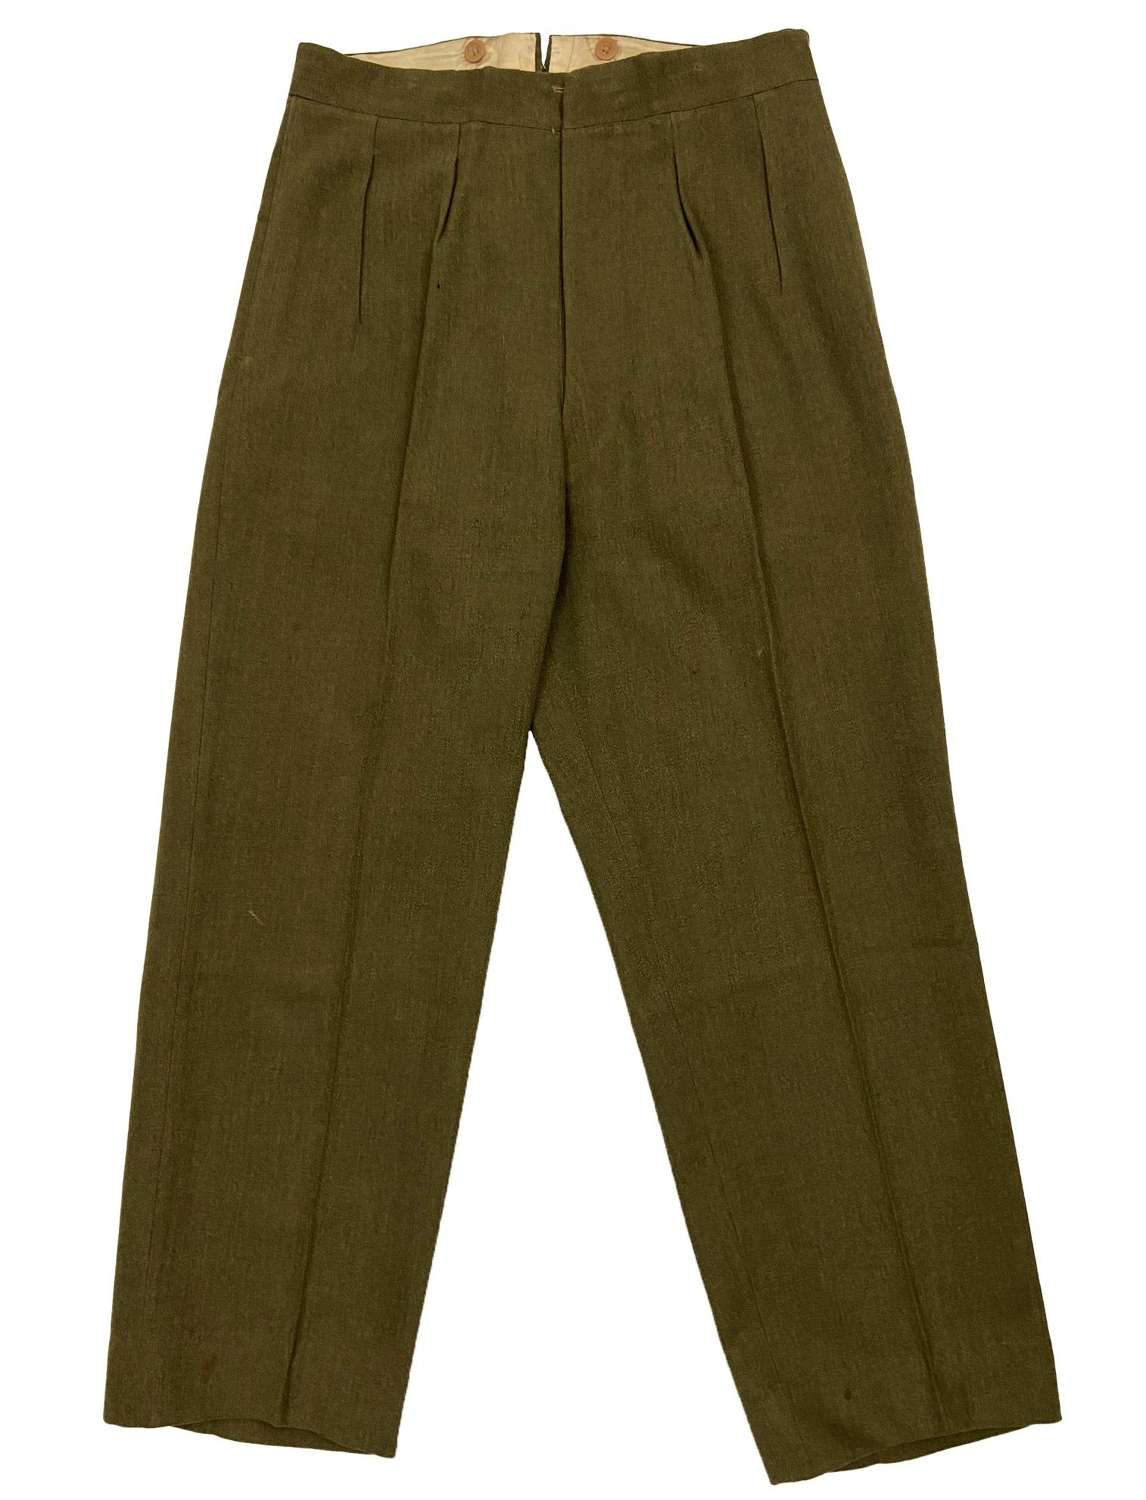 Original 1940s British Army Officers Service Dress Trousers